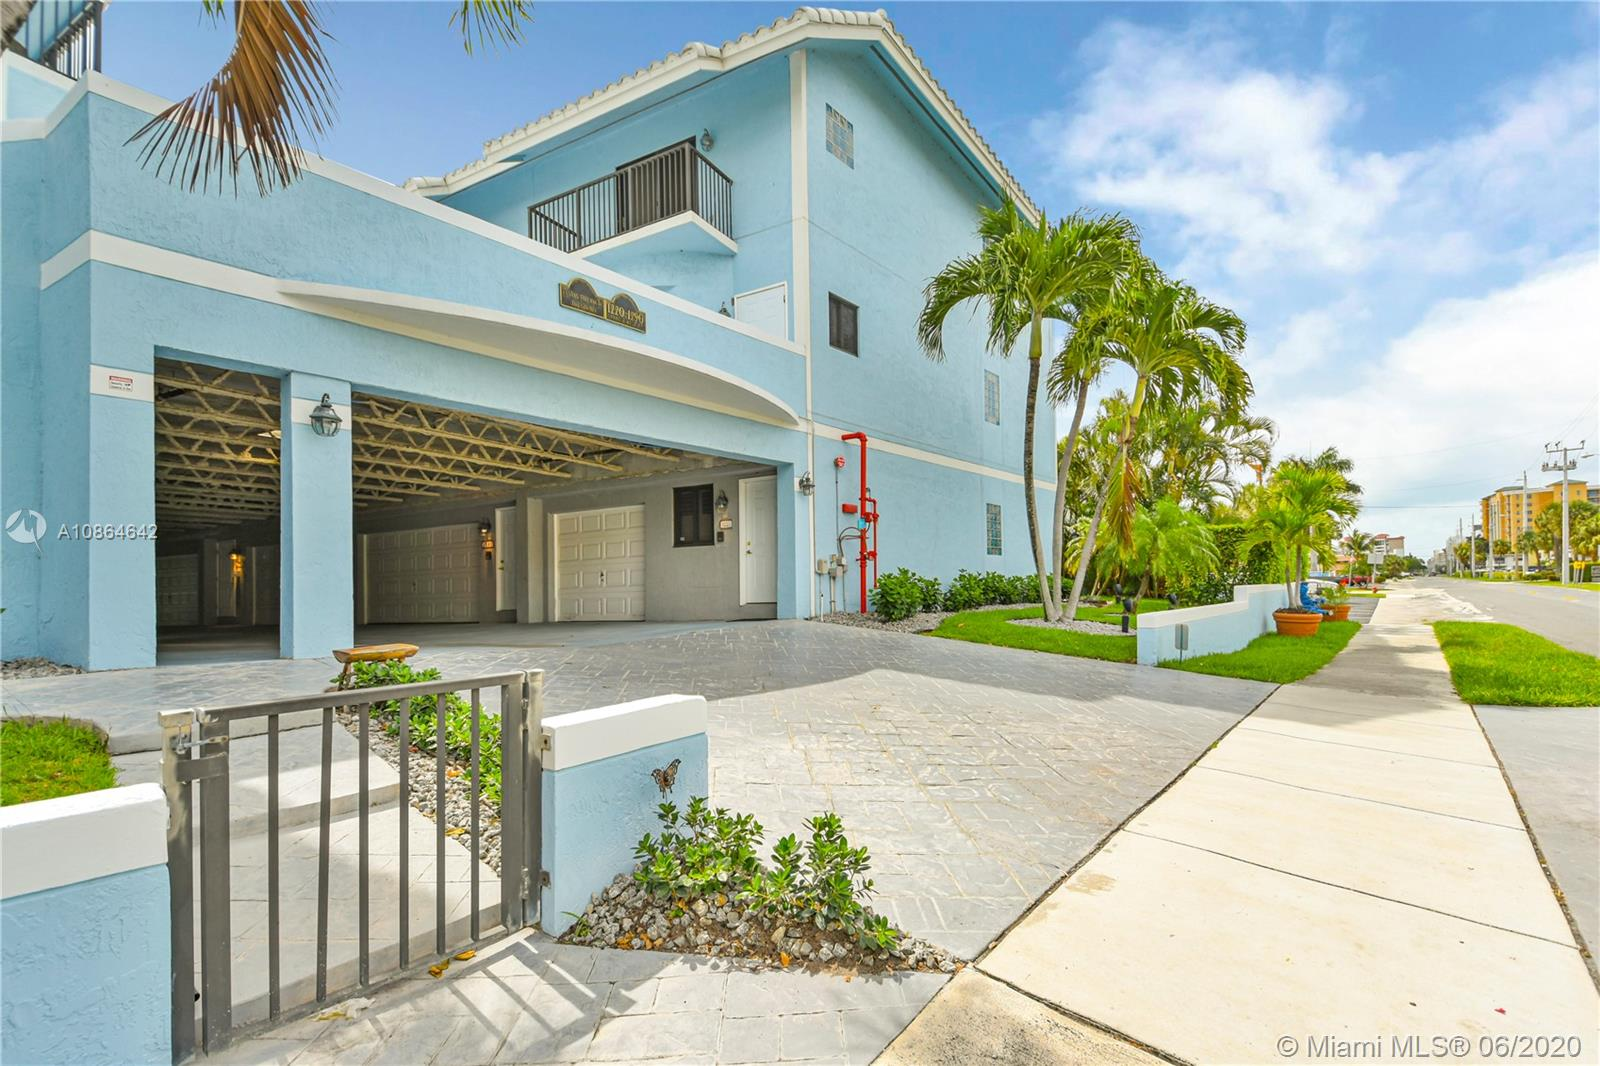 Fabulous tri-level town home with beach and intracoastal views from nearly every window. Large corner unit with great light and enormous open concept living. 3Br/2.5 Baths w/3rd floor private master suite including balcony. All bedrooms have walk in closets. Interior elevator, attached one car over sized garage w/bonus ground floor en-suite perfect for in-laws, rentals or extra living. Sliding glass doors open to a private fenced yard/patio. Additional central courtyard/patio off of main living room/great room. Literally steps from the beach and everything booming Pompano Beach has to offer!